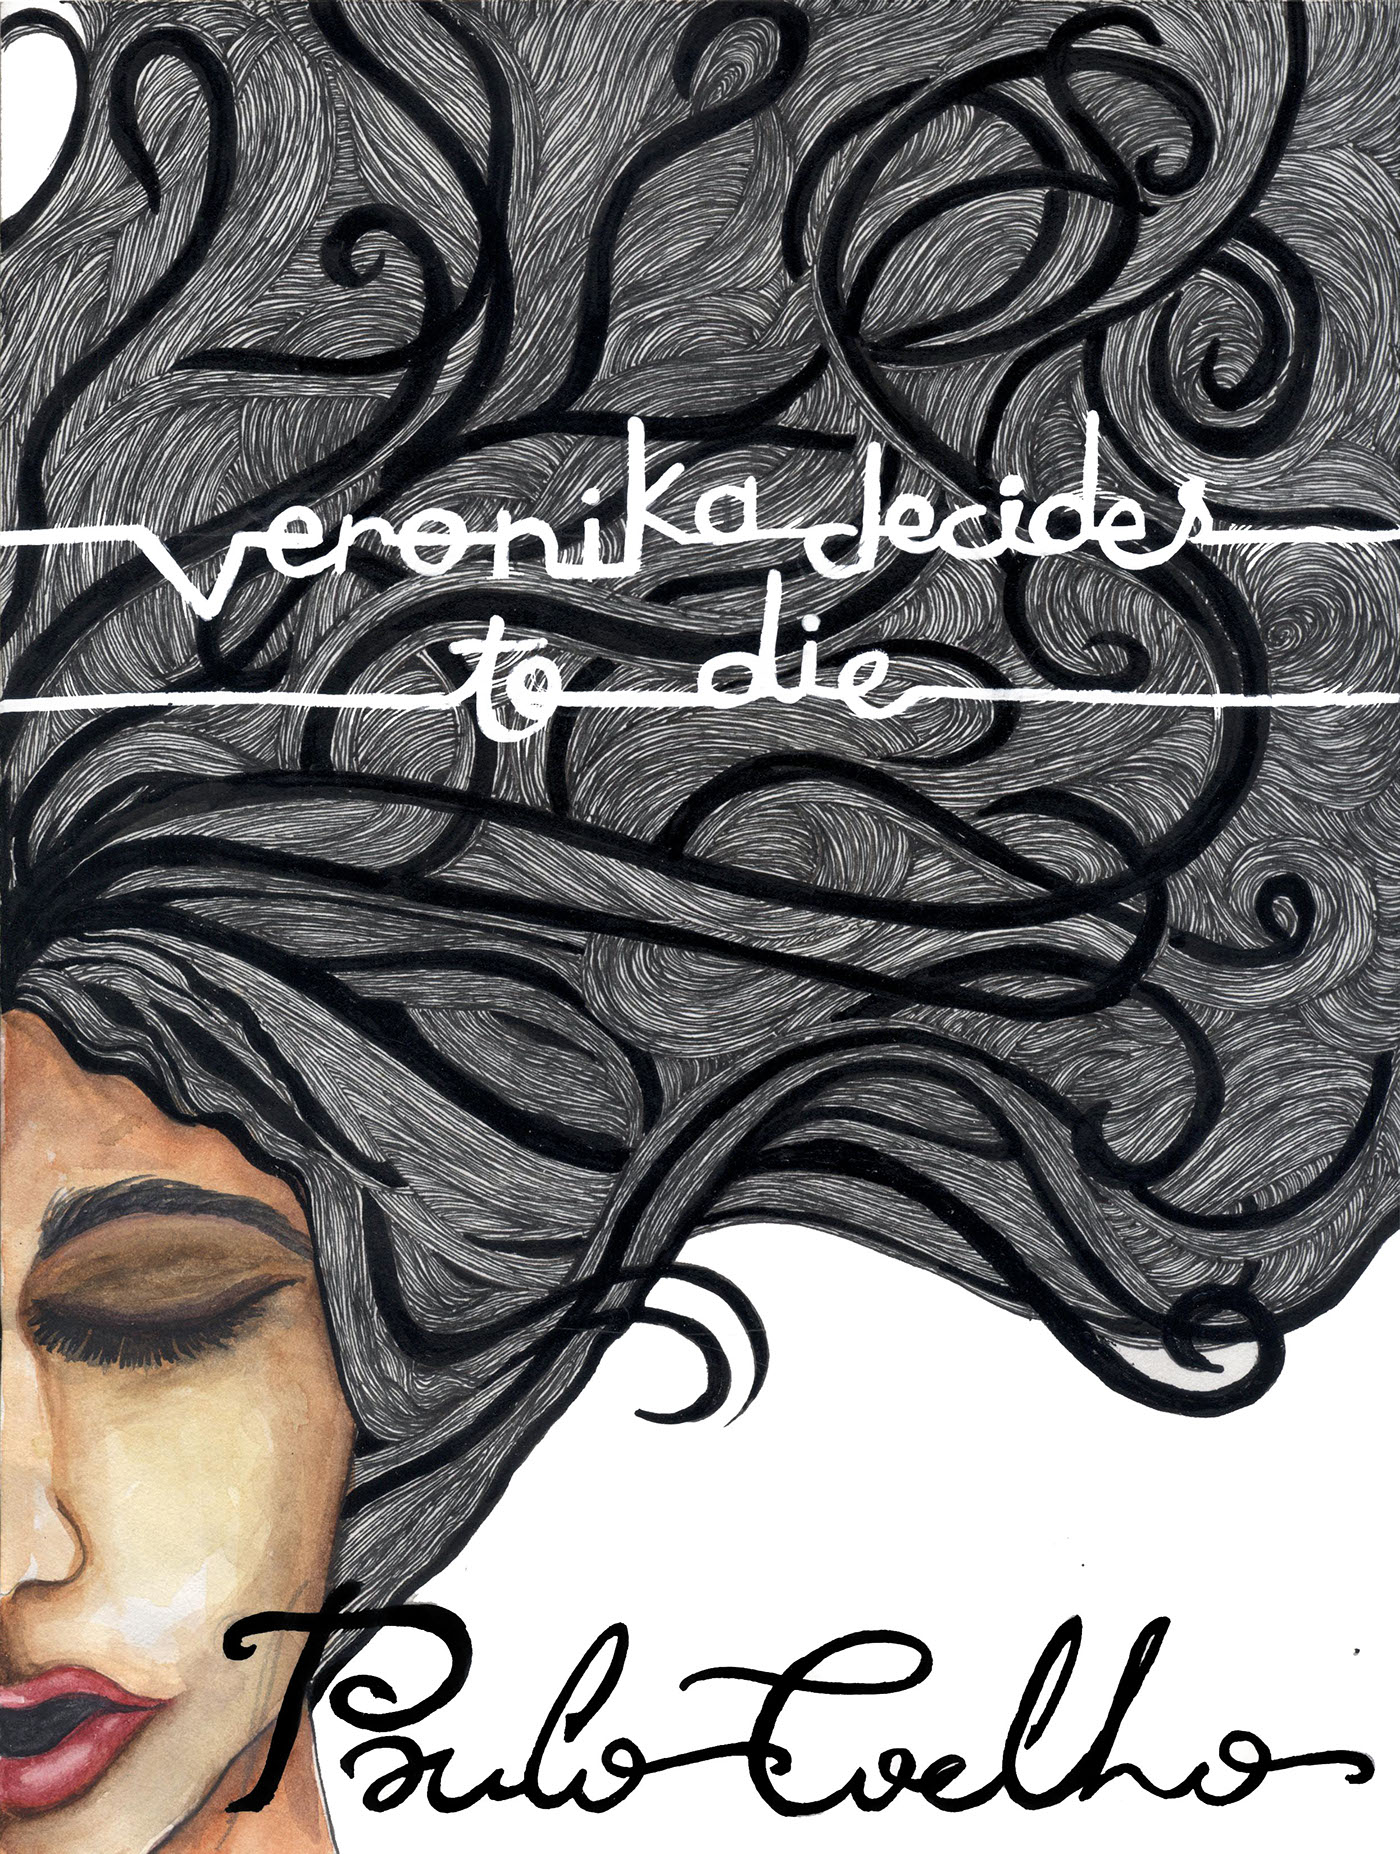 Book covers: Veronika Decides To Die on Behance